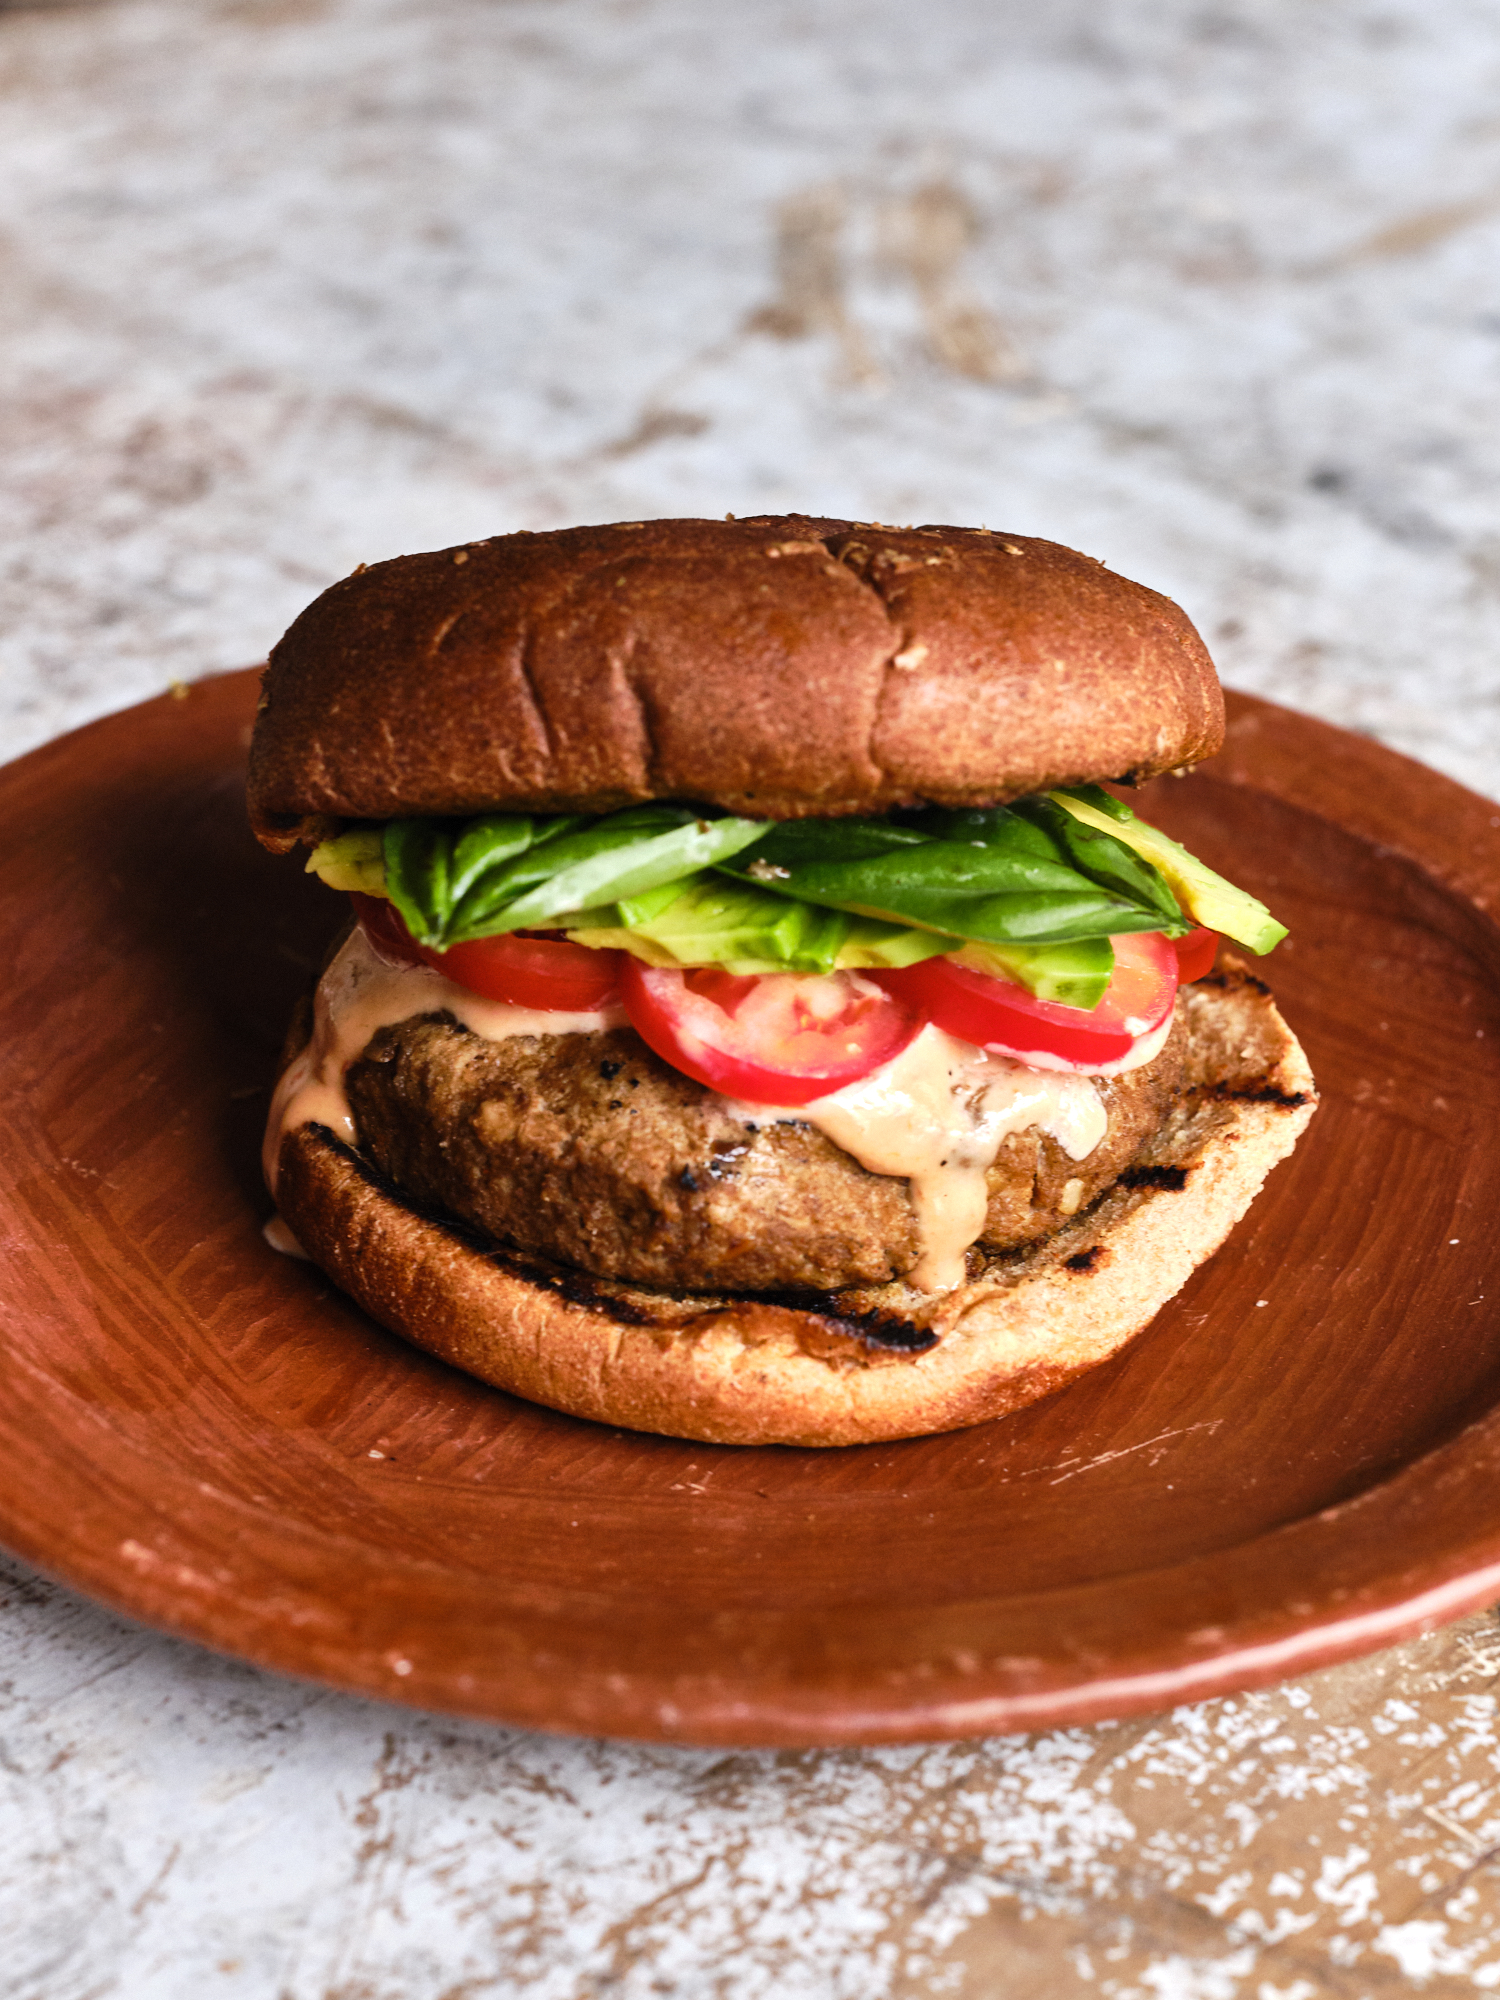 A Grillable Tofu Burger Recipe